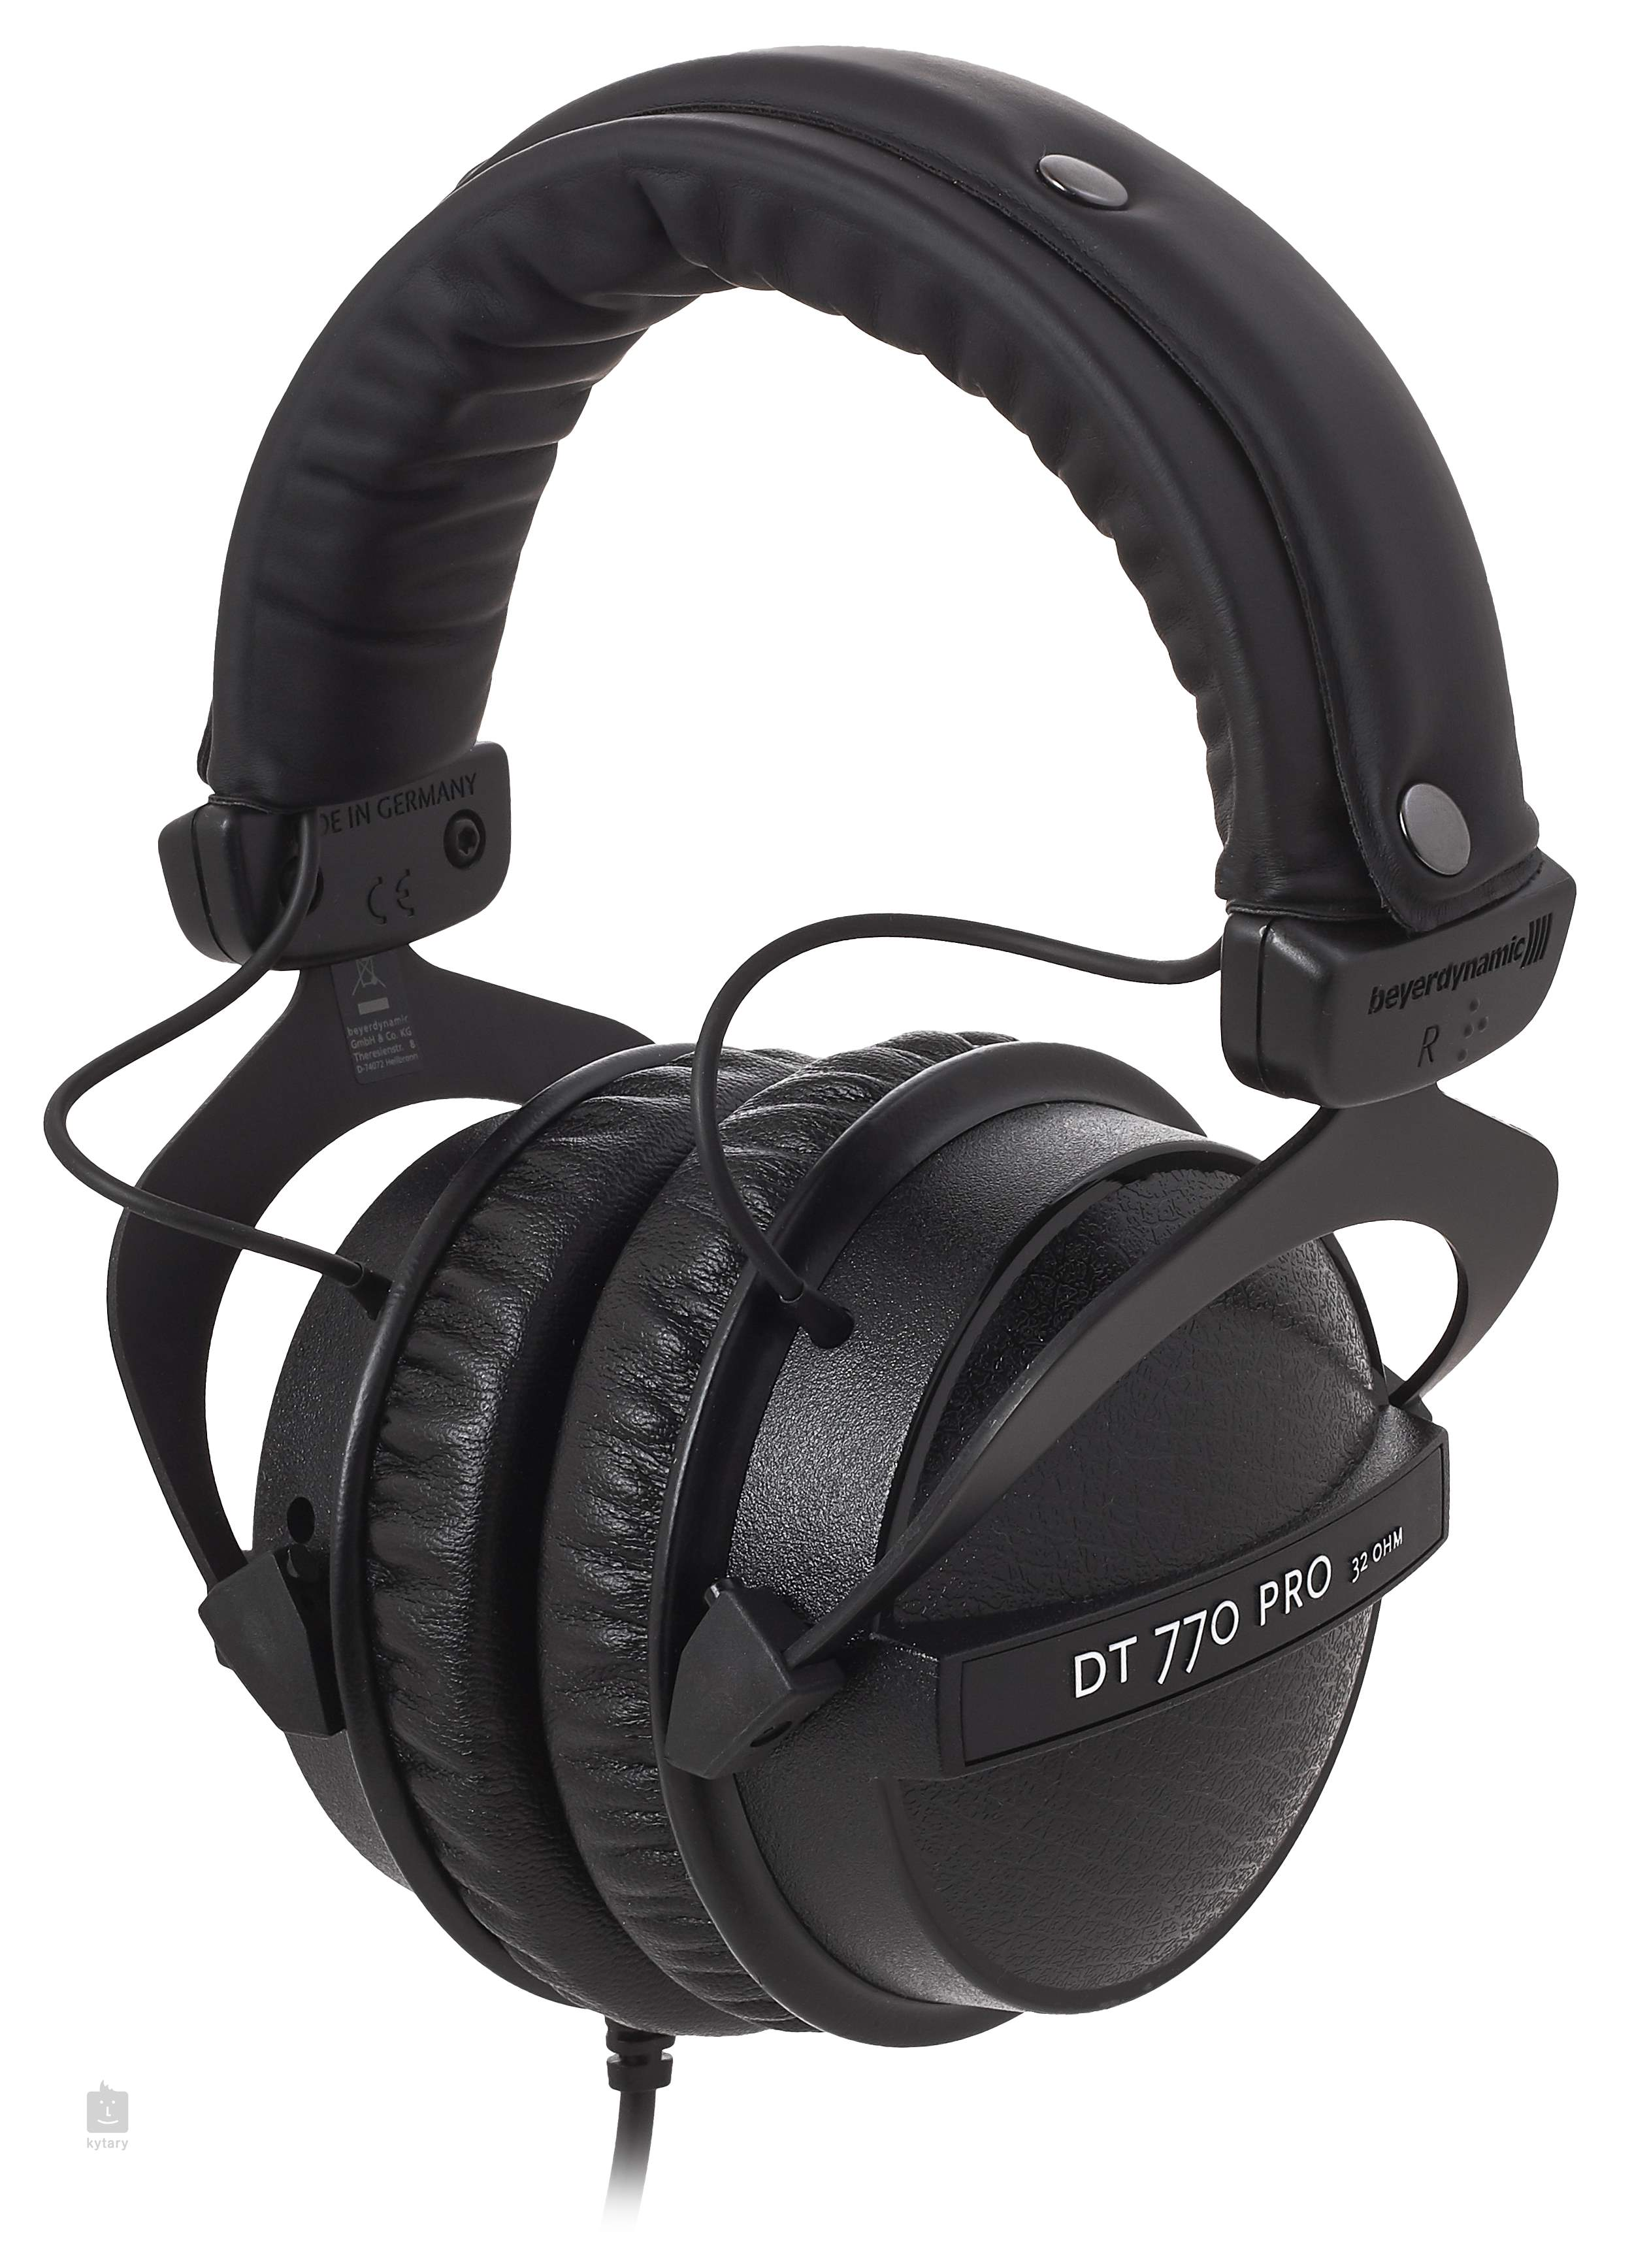 beyerdynamic dt 770 pro 32 studio headphones. Black Bedroom Furniture Sets. Home Design Ideas